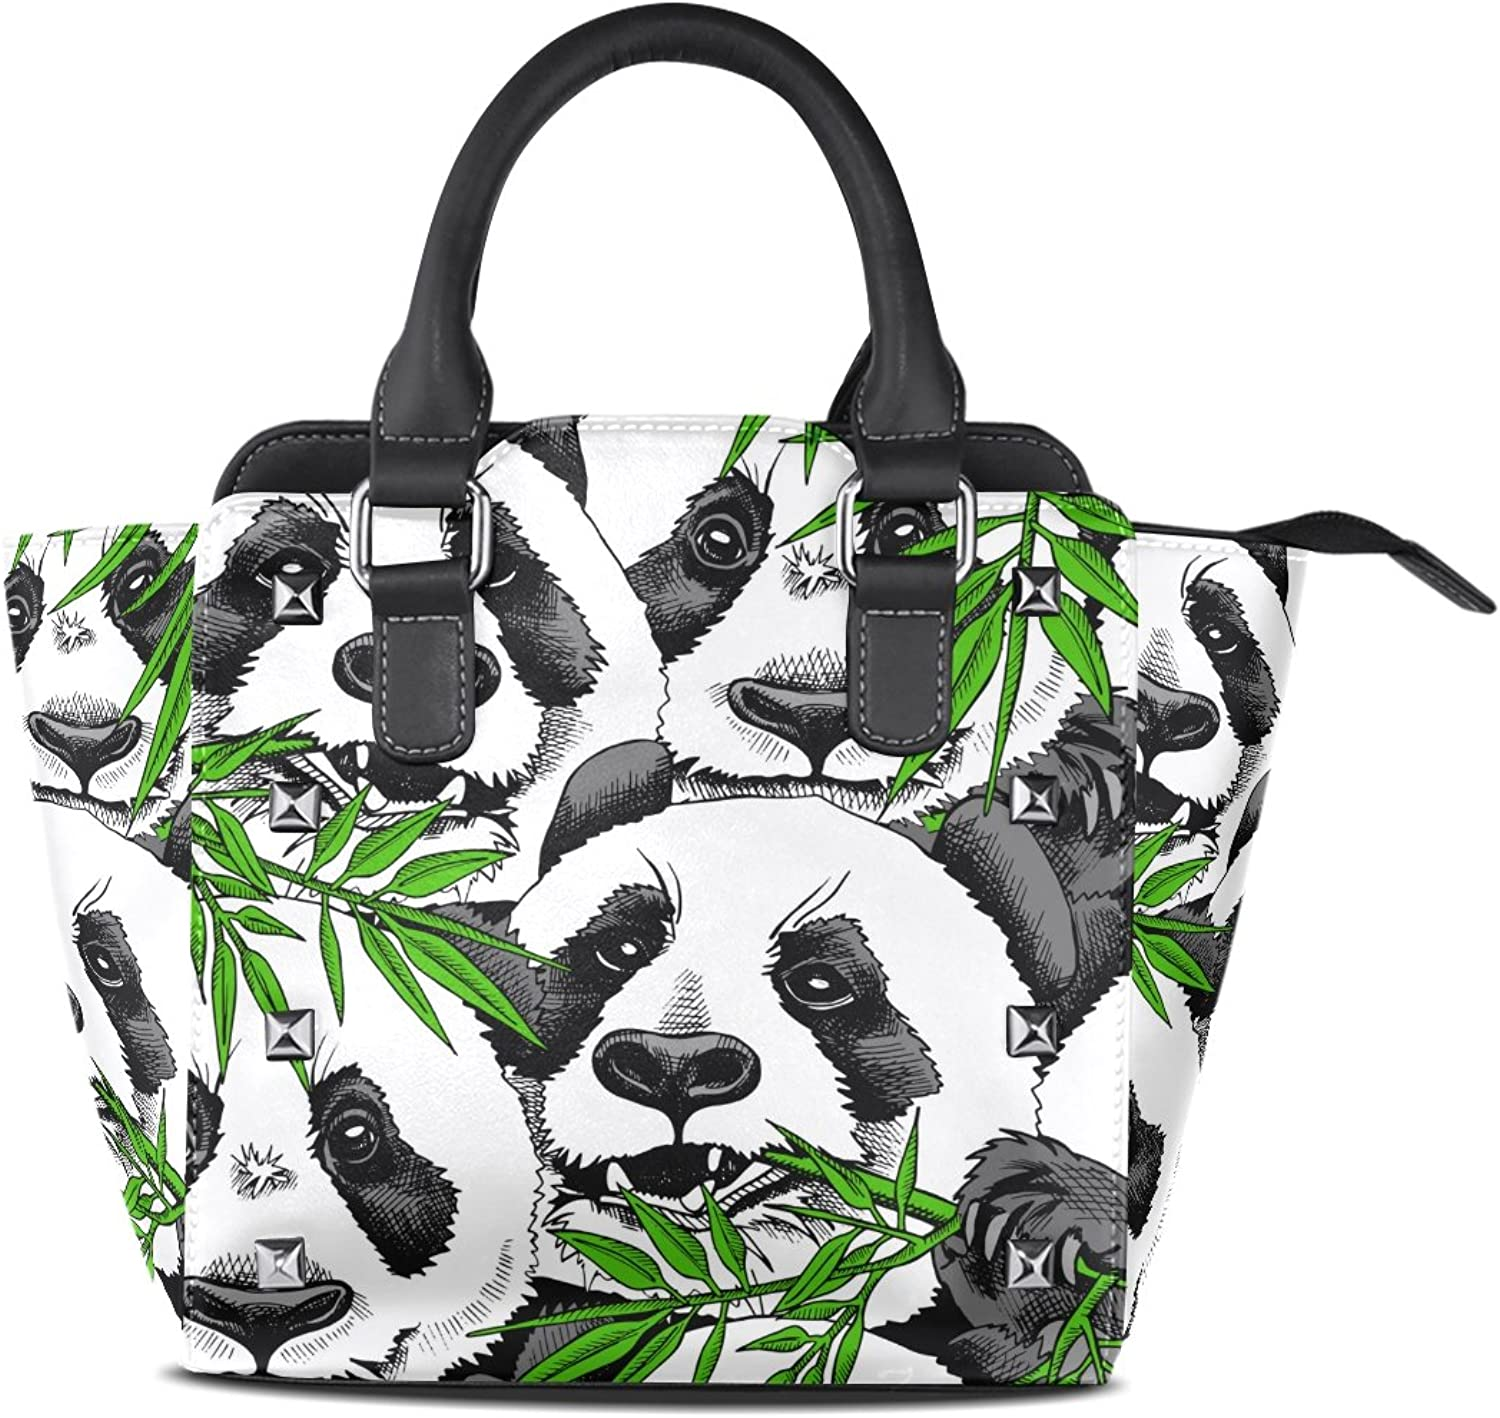 My Little Nest Women's Top Handle Satchel Handbag Panda Eating Bamboo Ladies PU Leather Shoulder Bag Crossbody Bag